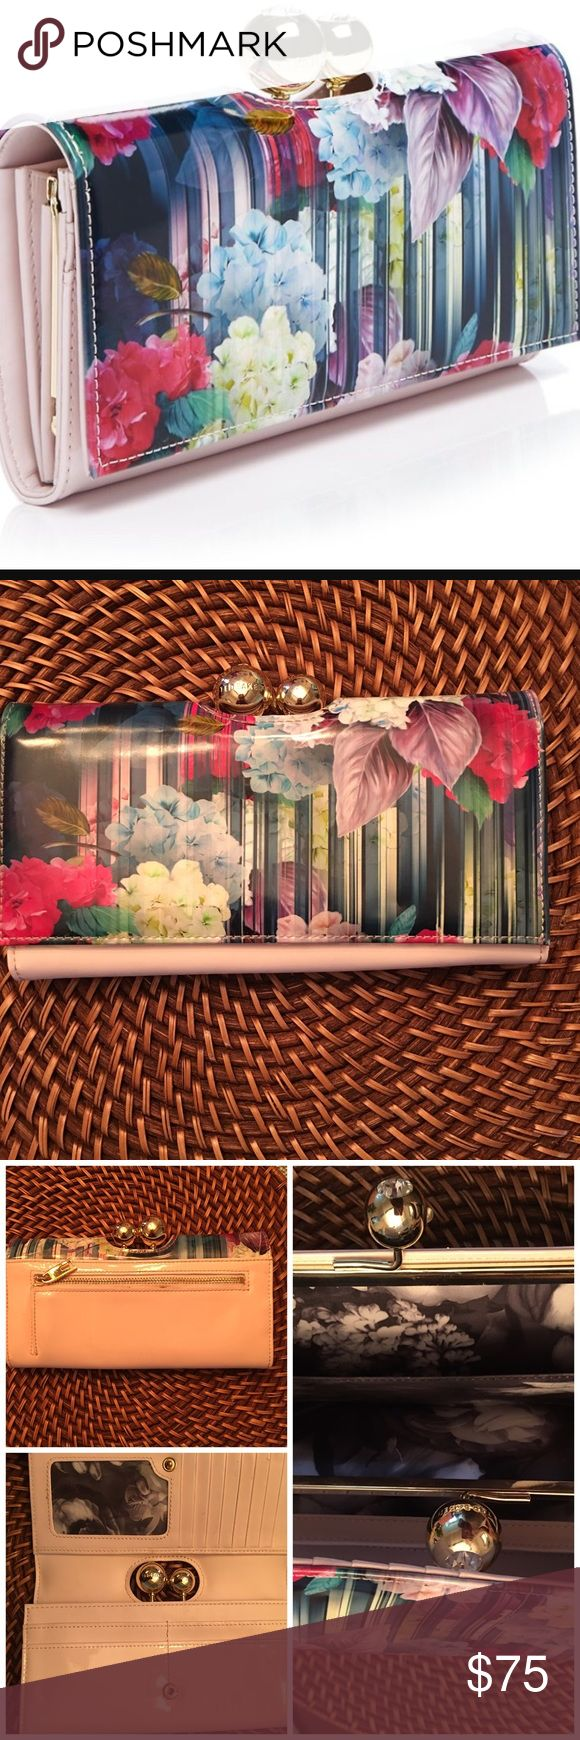 Ted baker  catlian hydrangea wallet reduced A gleaming kiss-clasp set with crystals highlights a patentleathermatinee wallet featuring a lush floral print-so pretty, you'll want to carry it as a chic clutch, too. 3 flaws 1. Stain by the zipper 2. L shape spot idk were it came from could of been from storage and 3 light pilling from taking cards out inside looks great if you need more pic let me known Ted Baker Bags Wallets